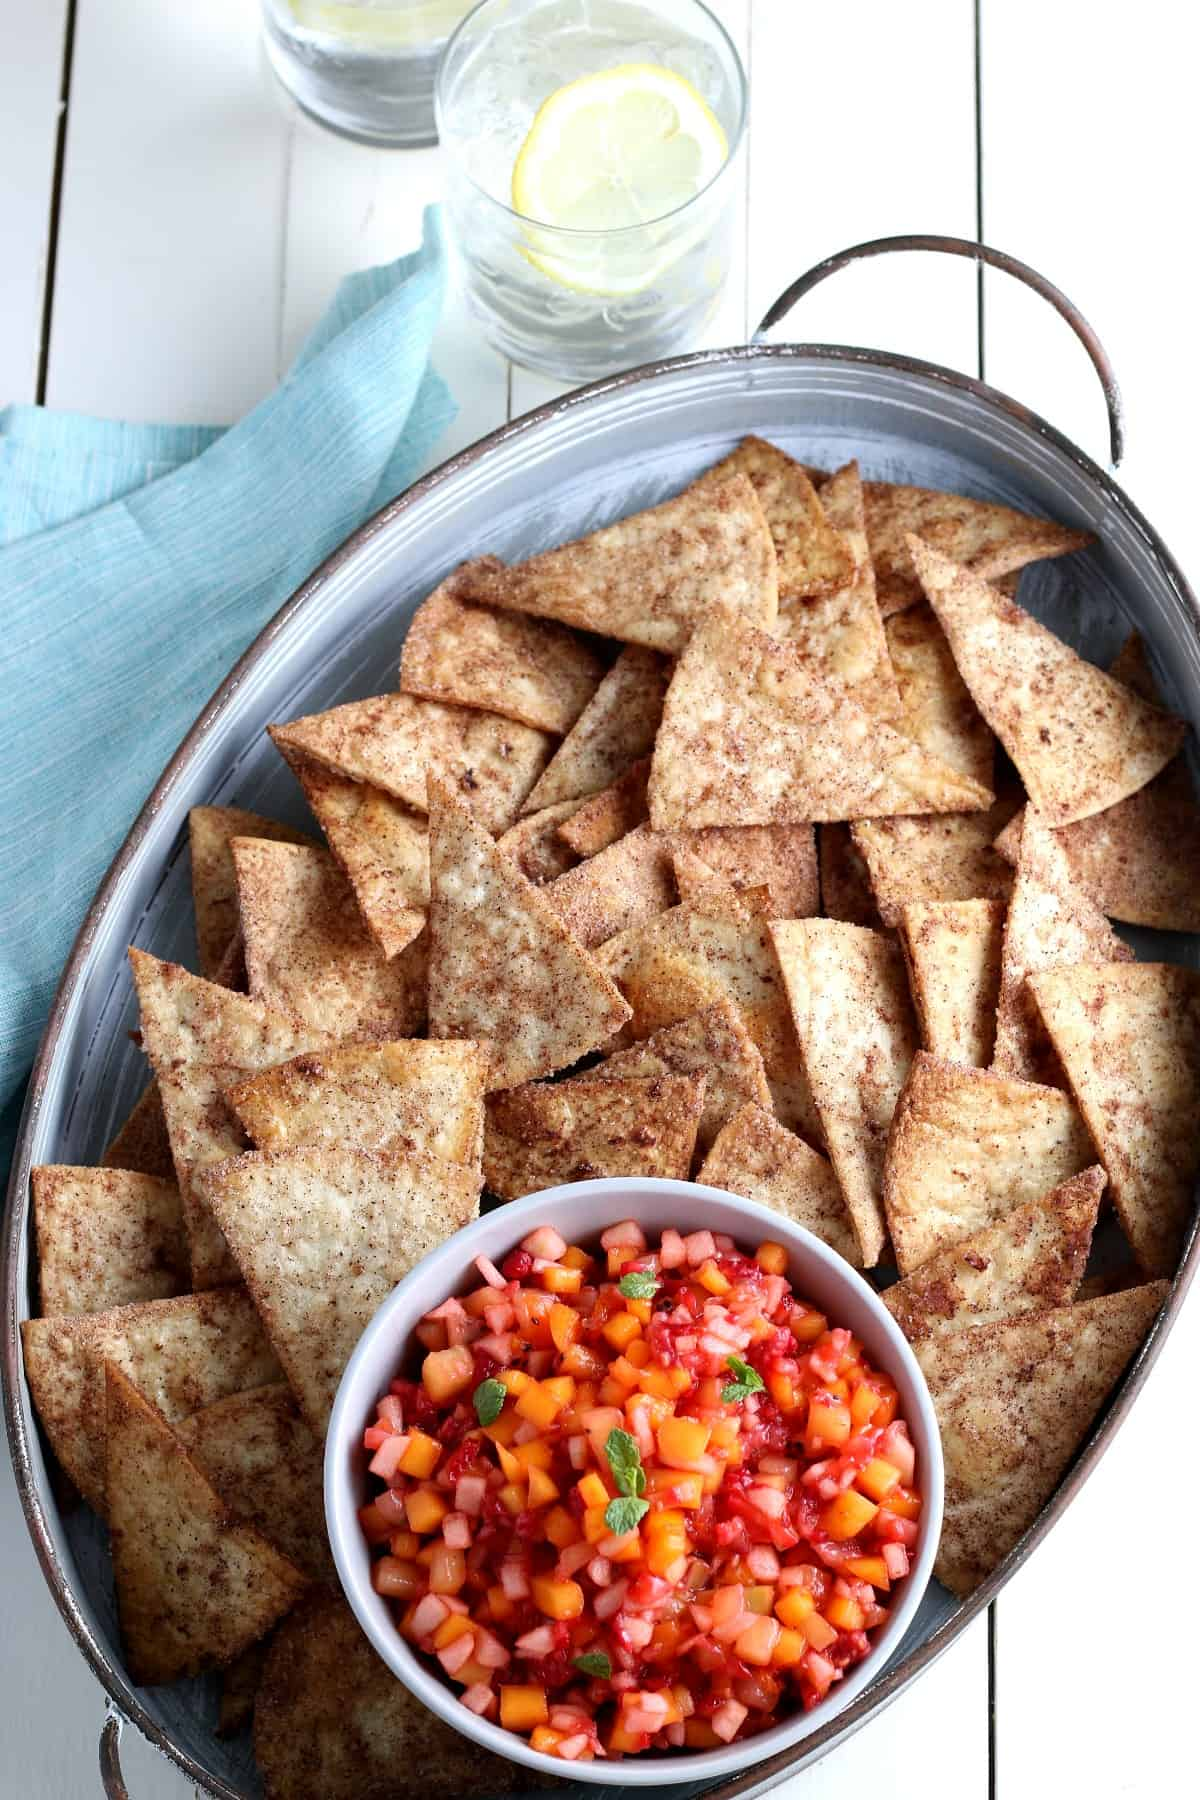 Overhead photo of a handles tray full of cinnamon chips and a bowlful of read and orange fruit salsa.